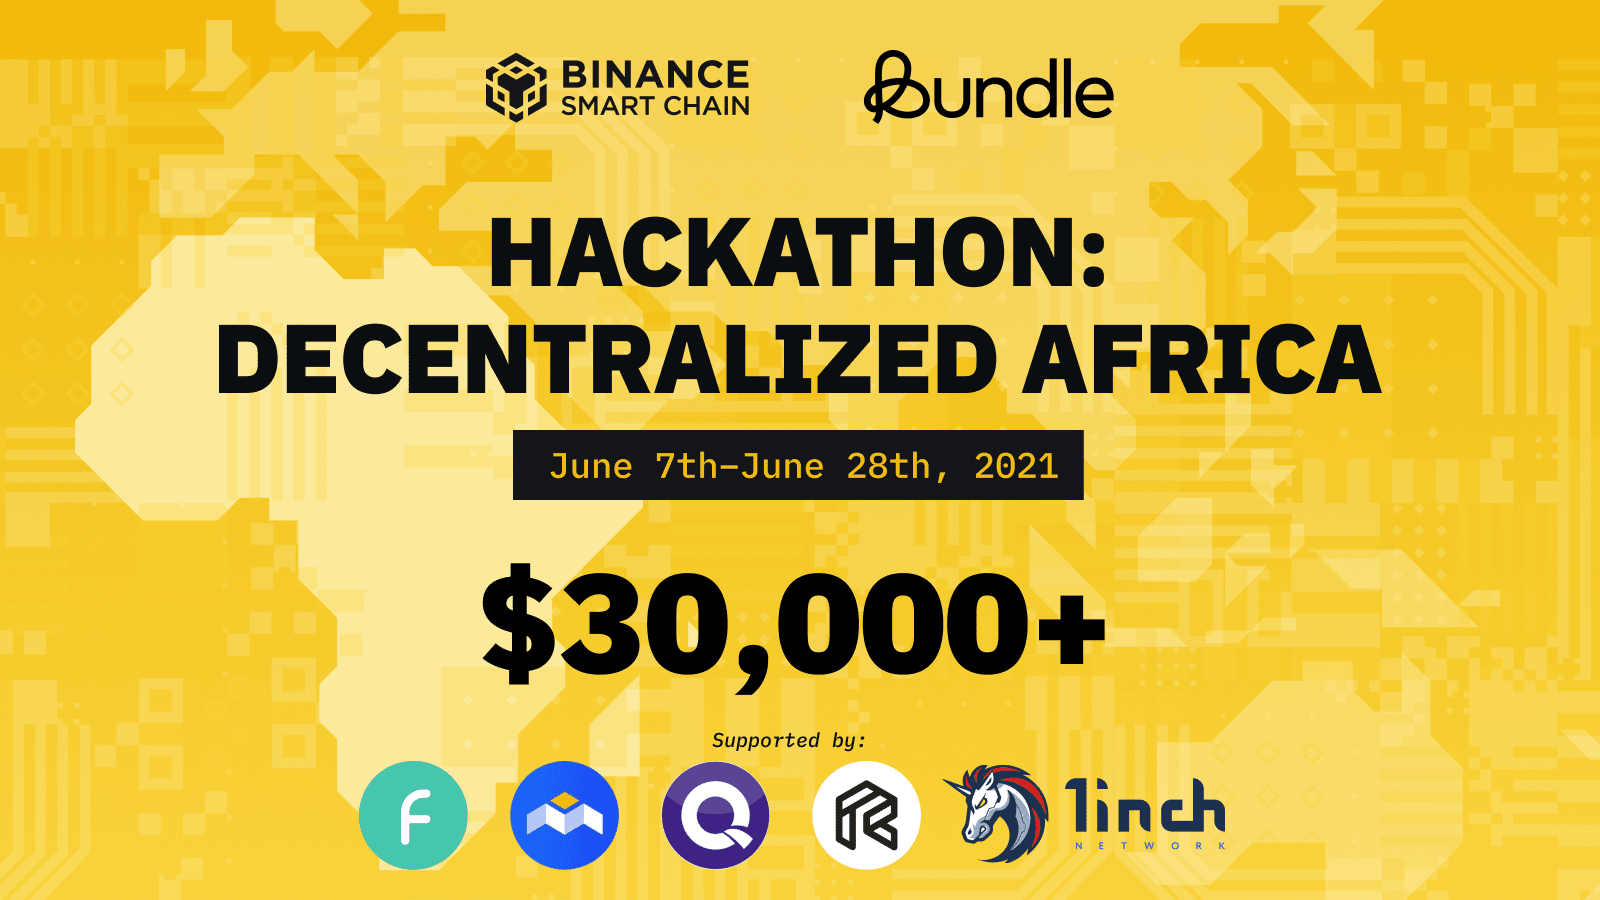 Decentralized Africa: Over $30,000 in Prizes To Hackathon Participants in Africa   Binance Blog